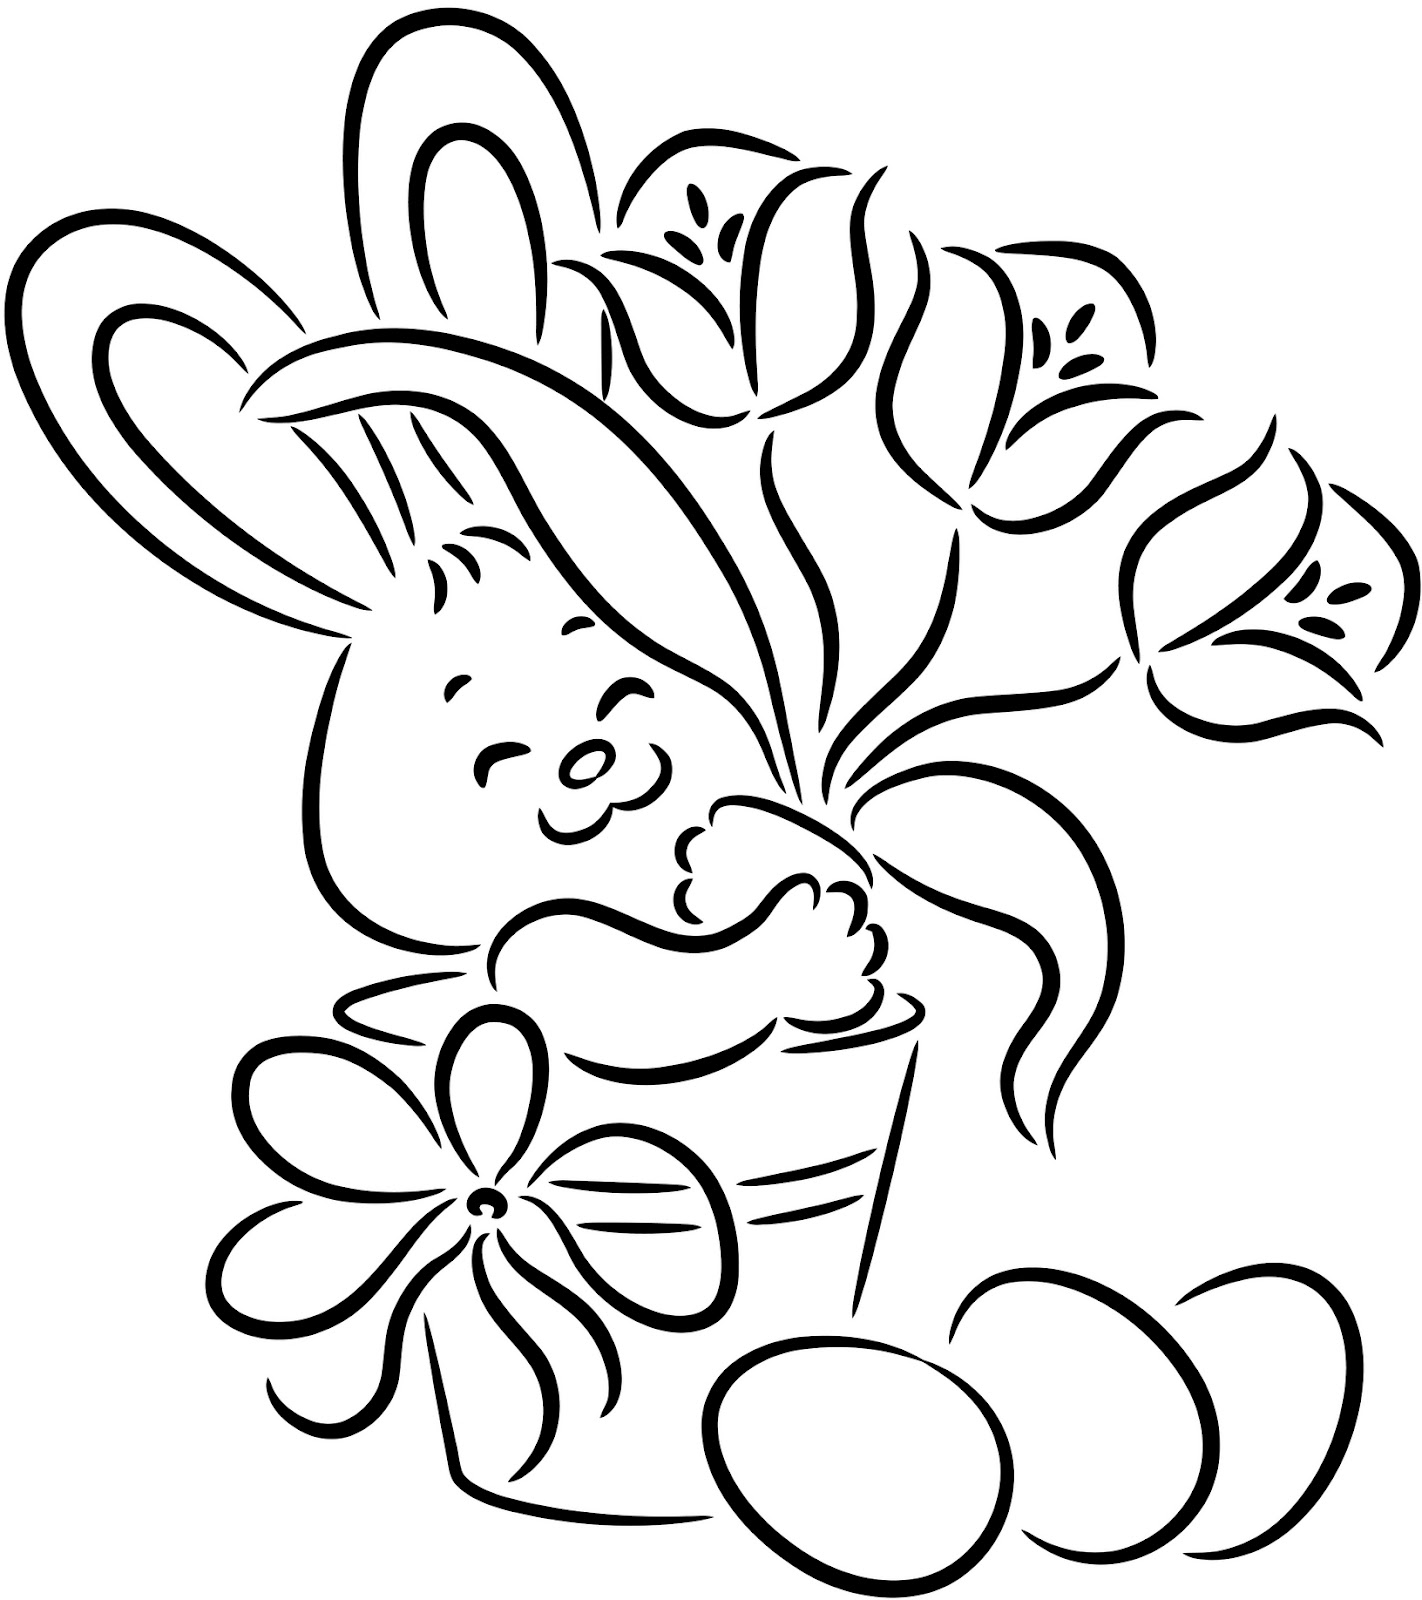 easter coloring pages for toddlers - photo#20